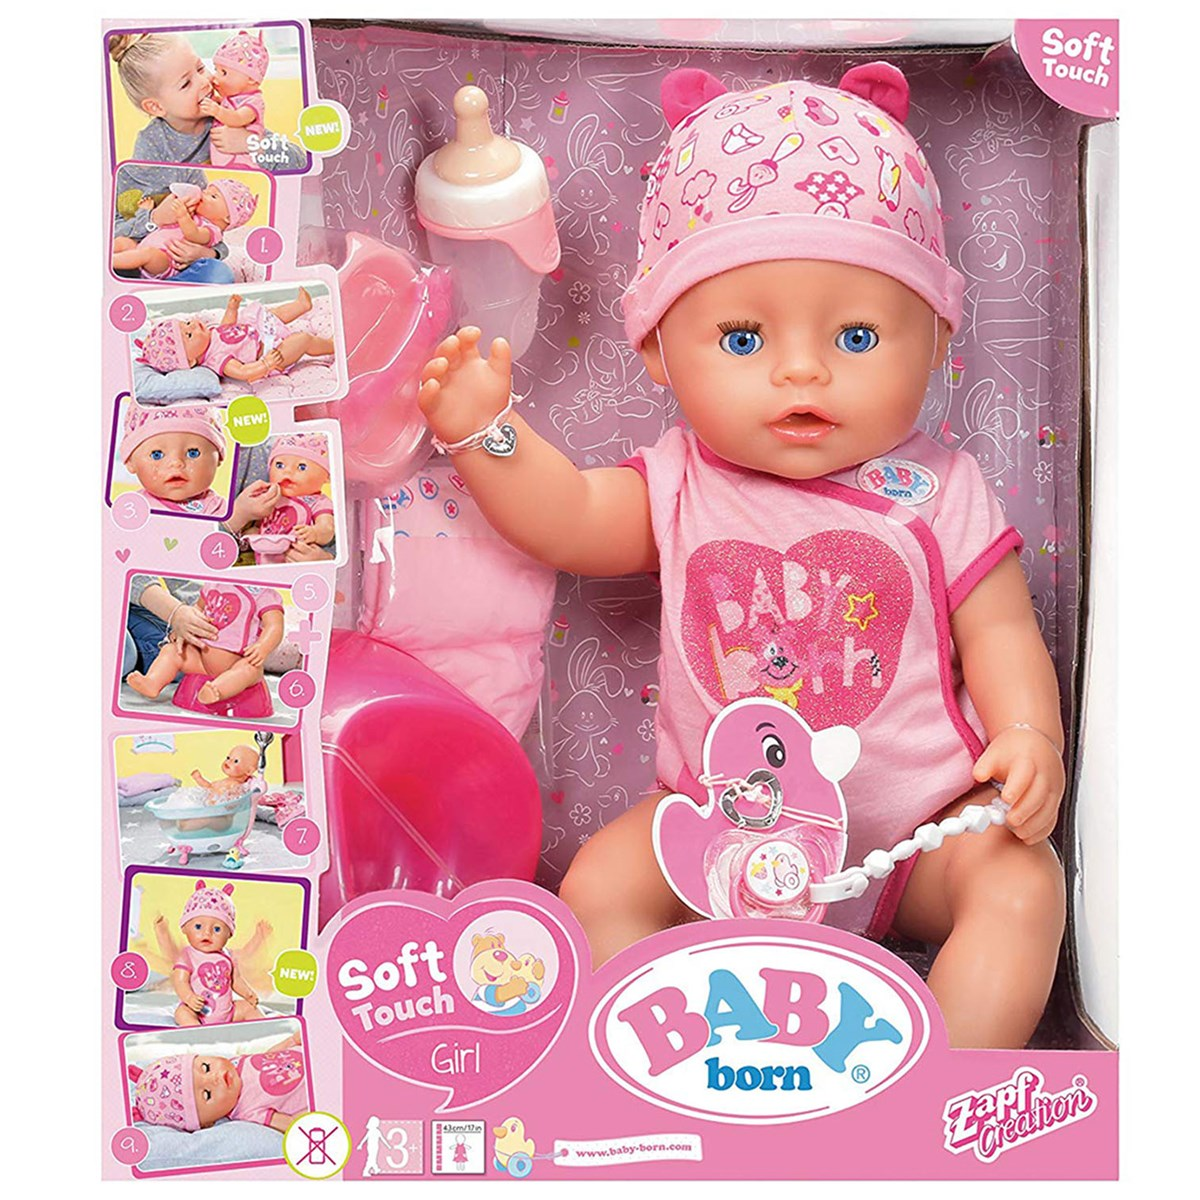 Baby Born Soft Touch Girl With Blue Eyes Alexandalexa